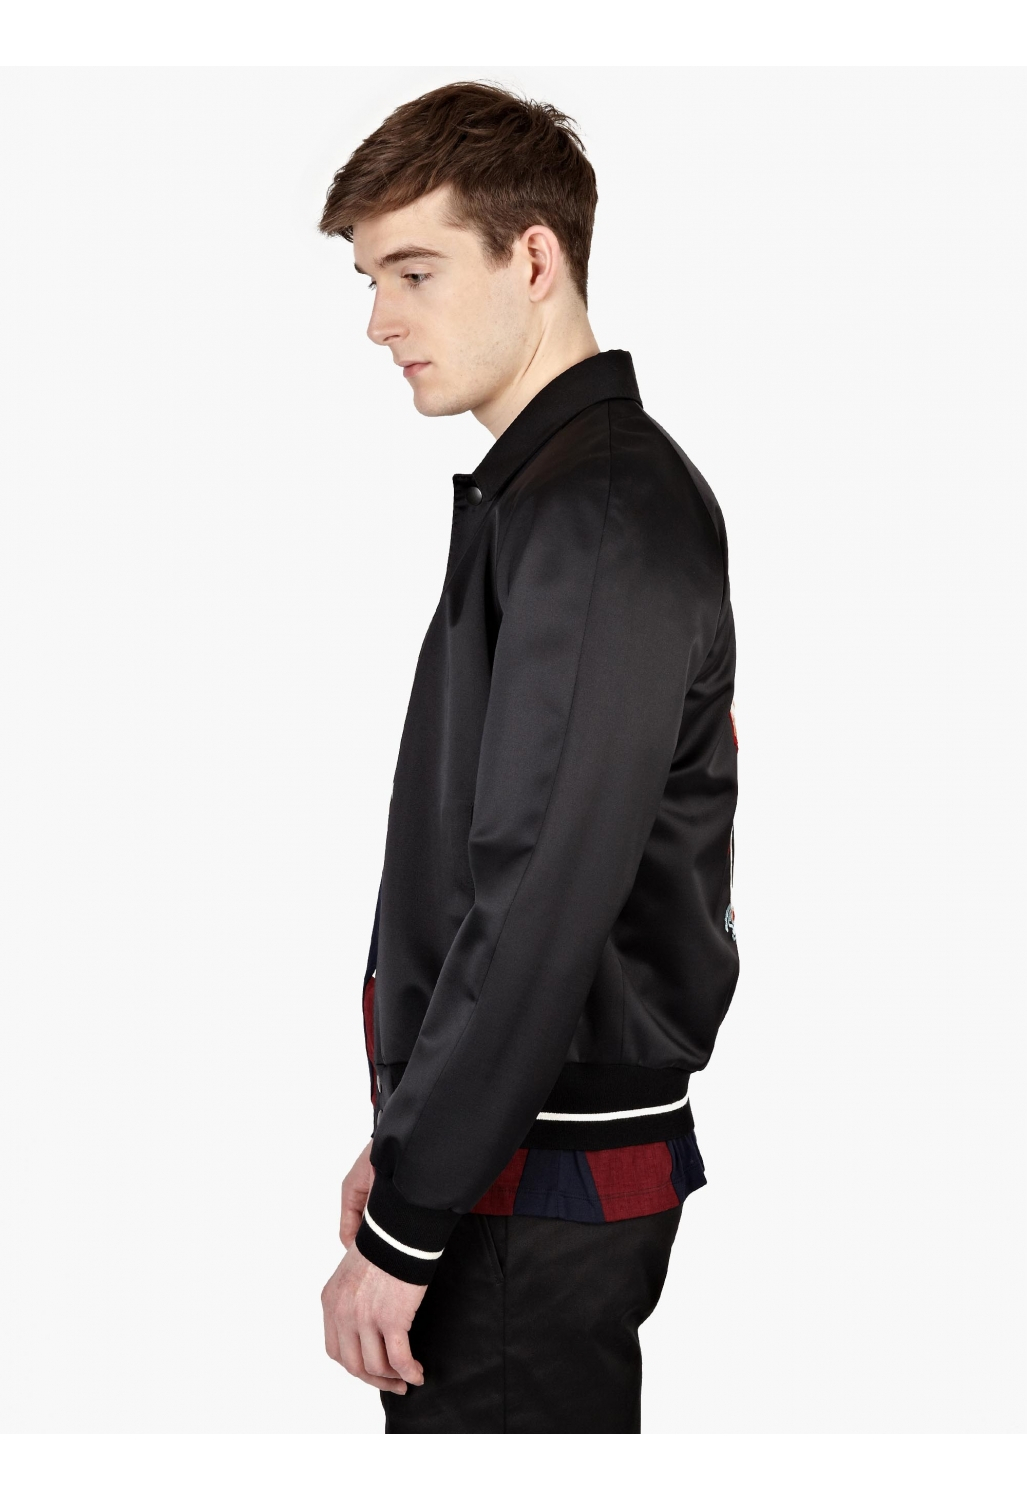 Marc jacobs Men'S Embroidered Flamingo Sports Jacket in ...